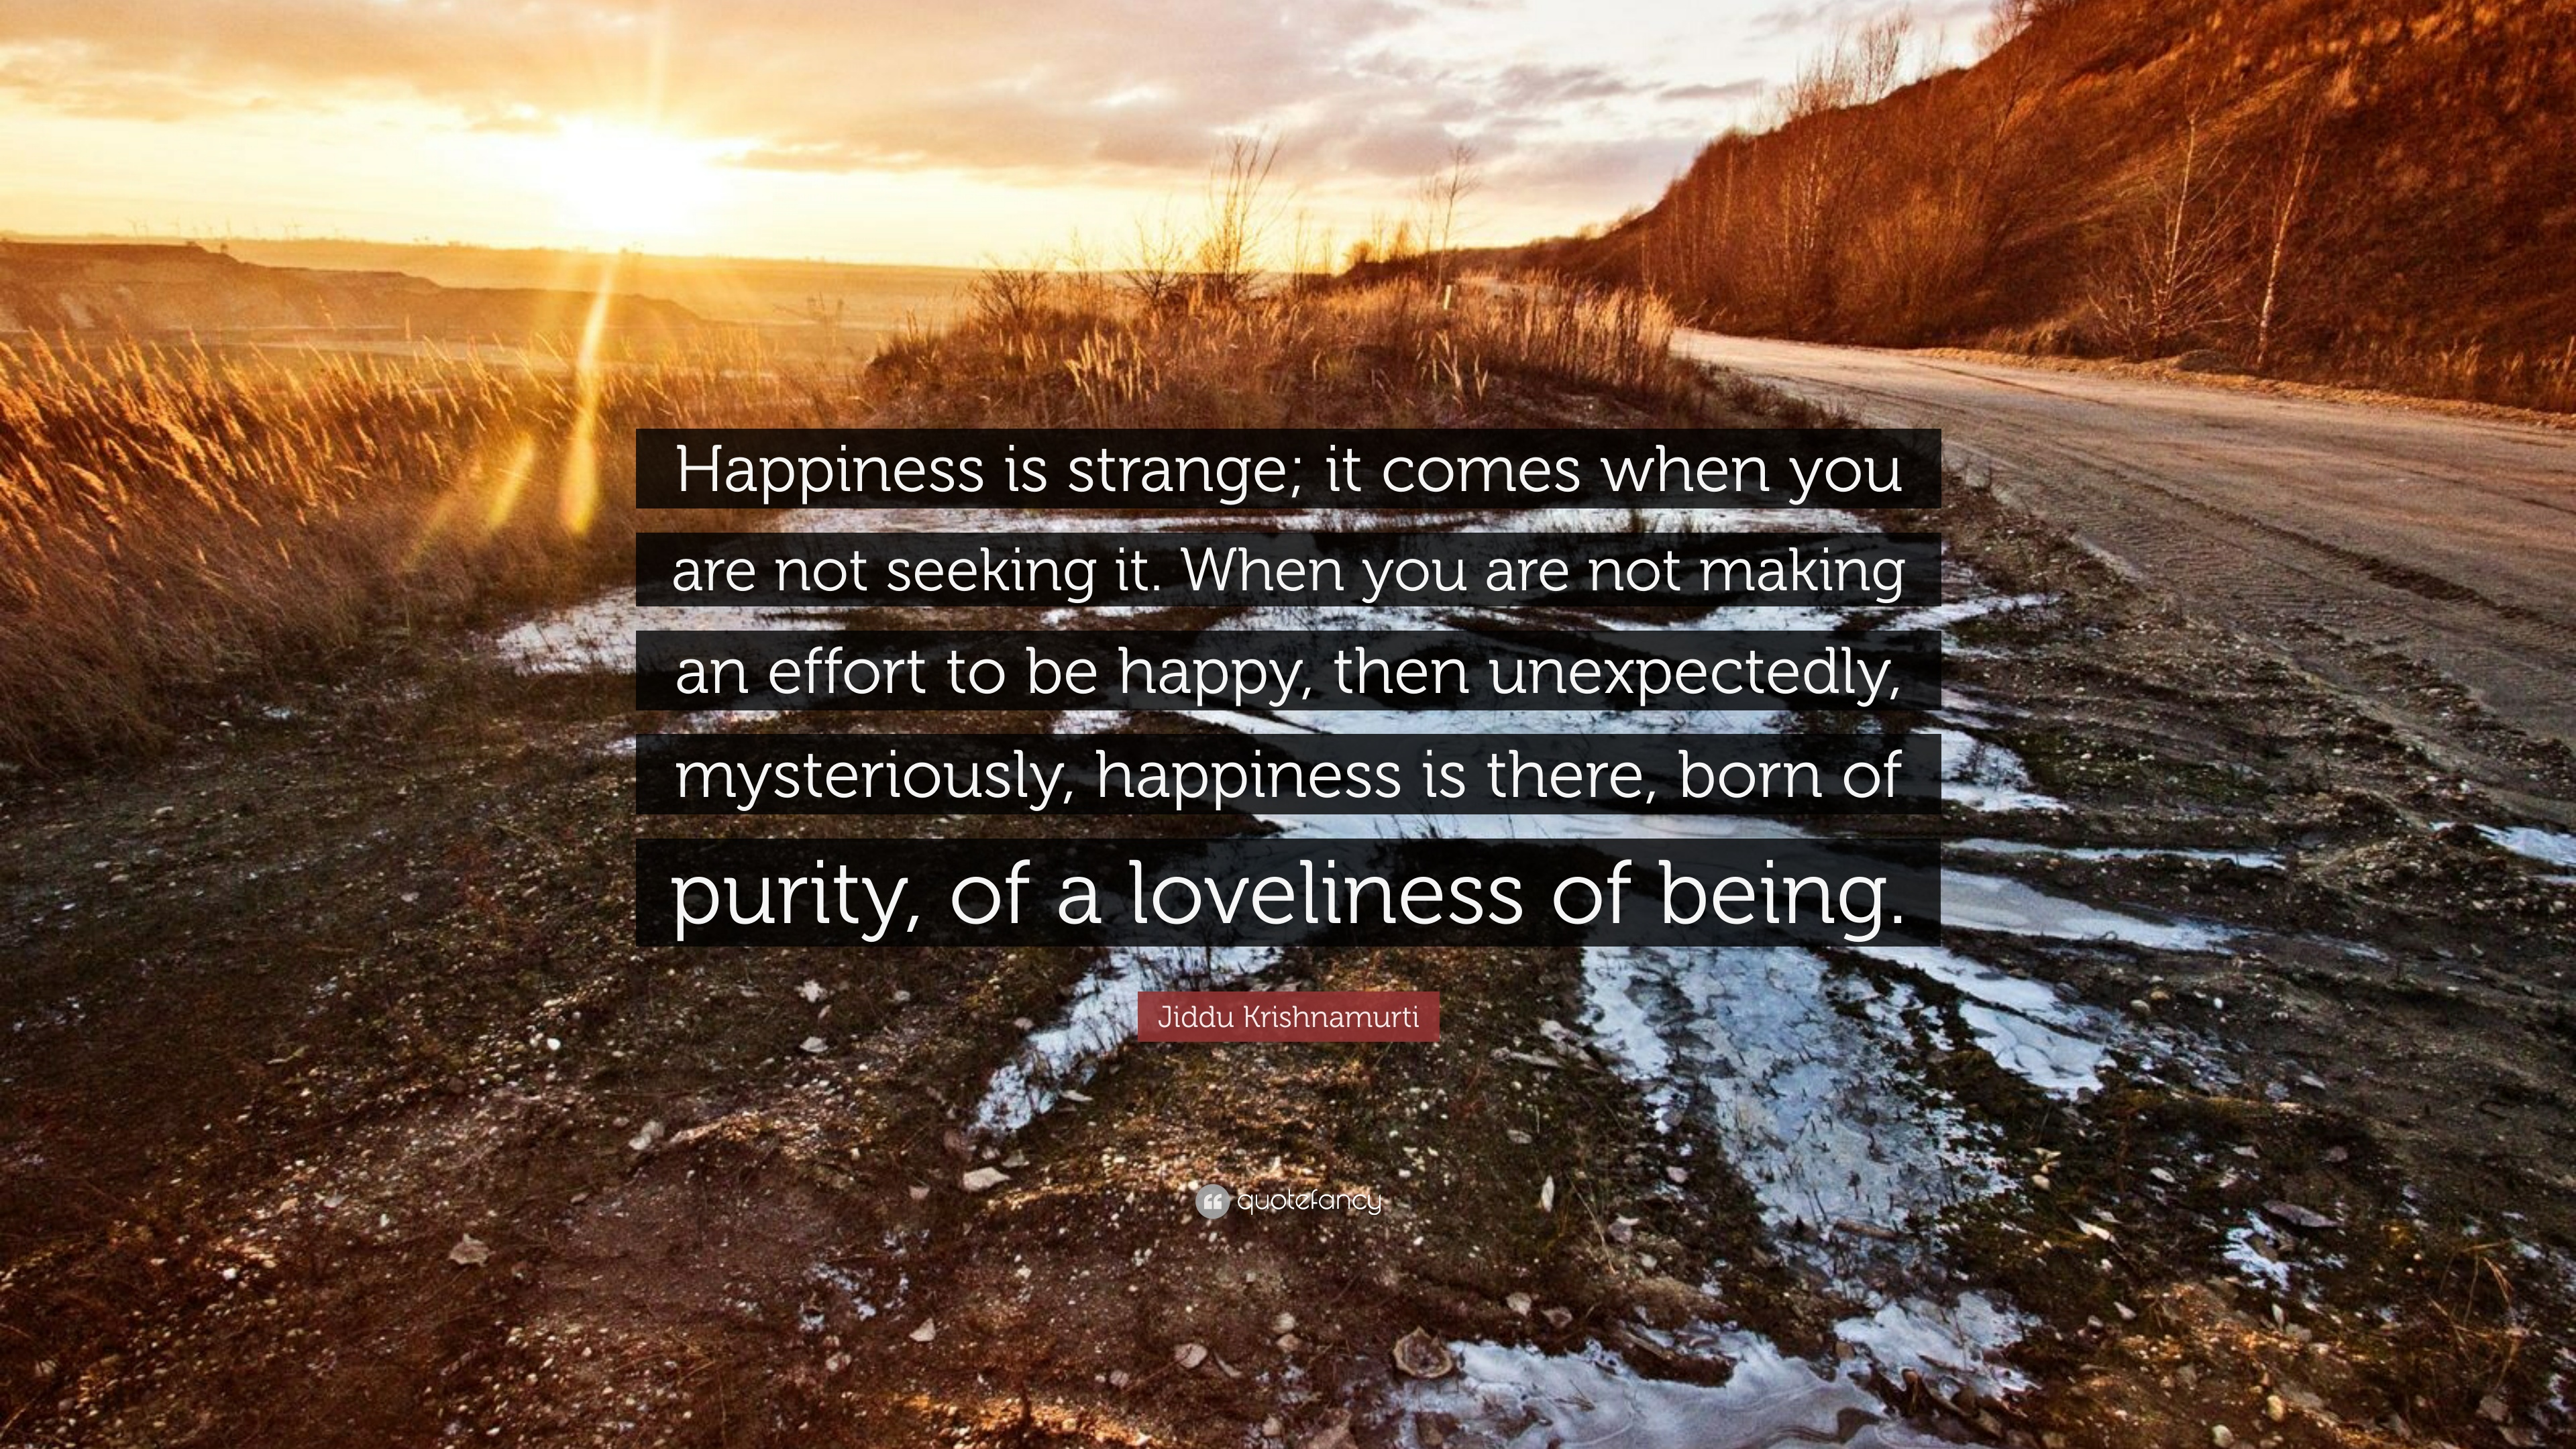 Jiddu Krishnamurti Quote Happiness Is Strange It Comes When You